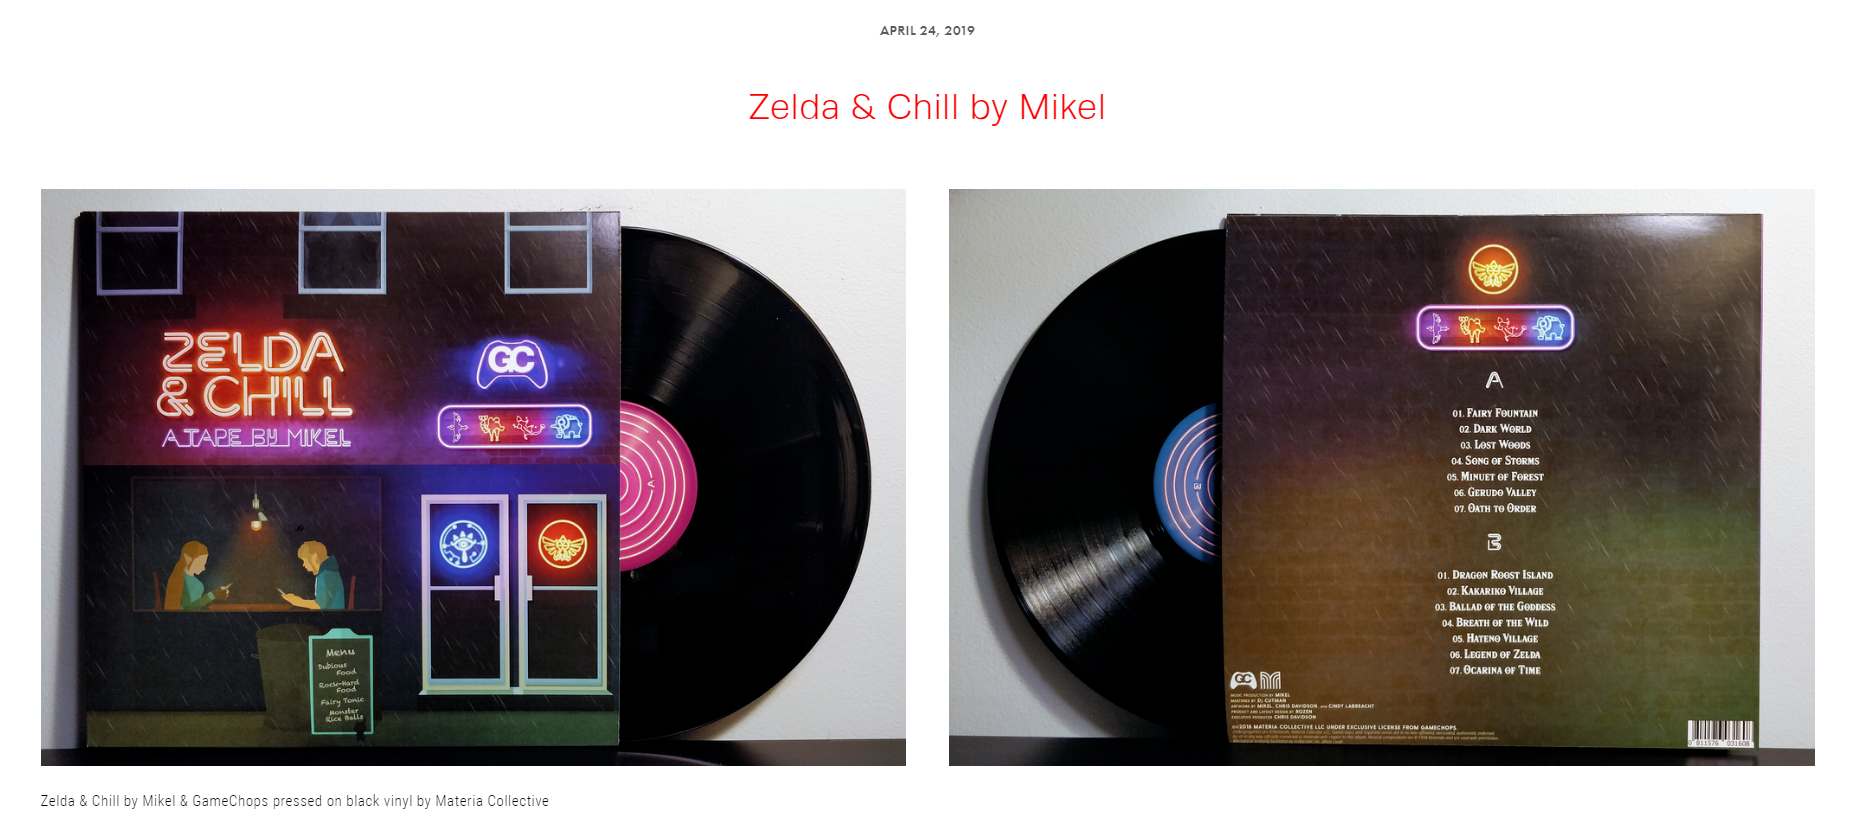 "Review #31 - ""From the wind swept fields of Hyrule to your turntable at home, what Mikel and the team at GameChops and Materia Collective have achieved here is pure Zelda bliss."""